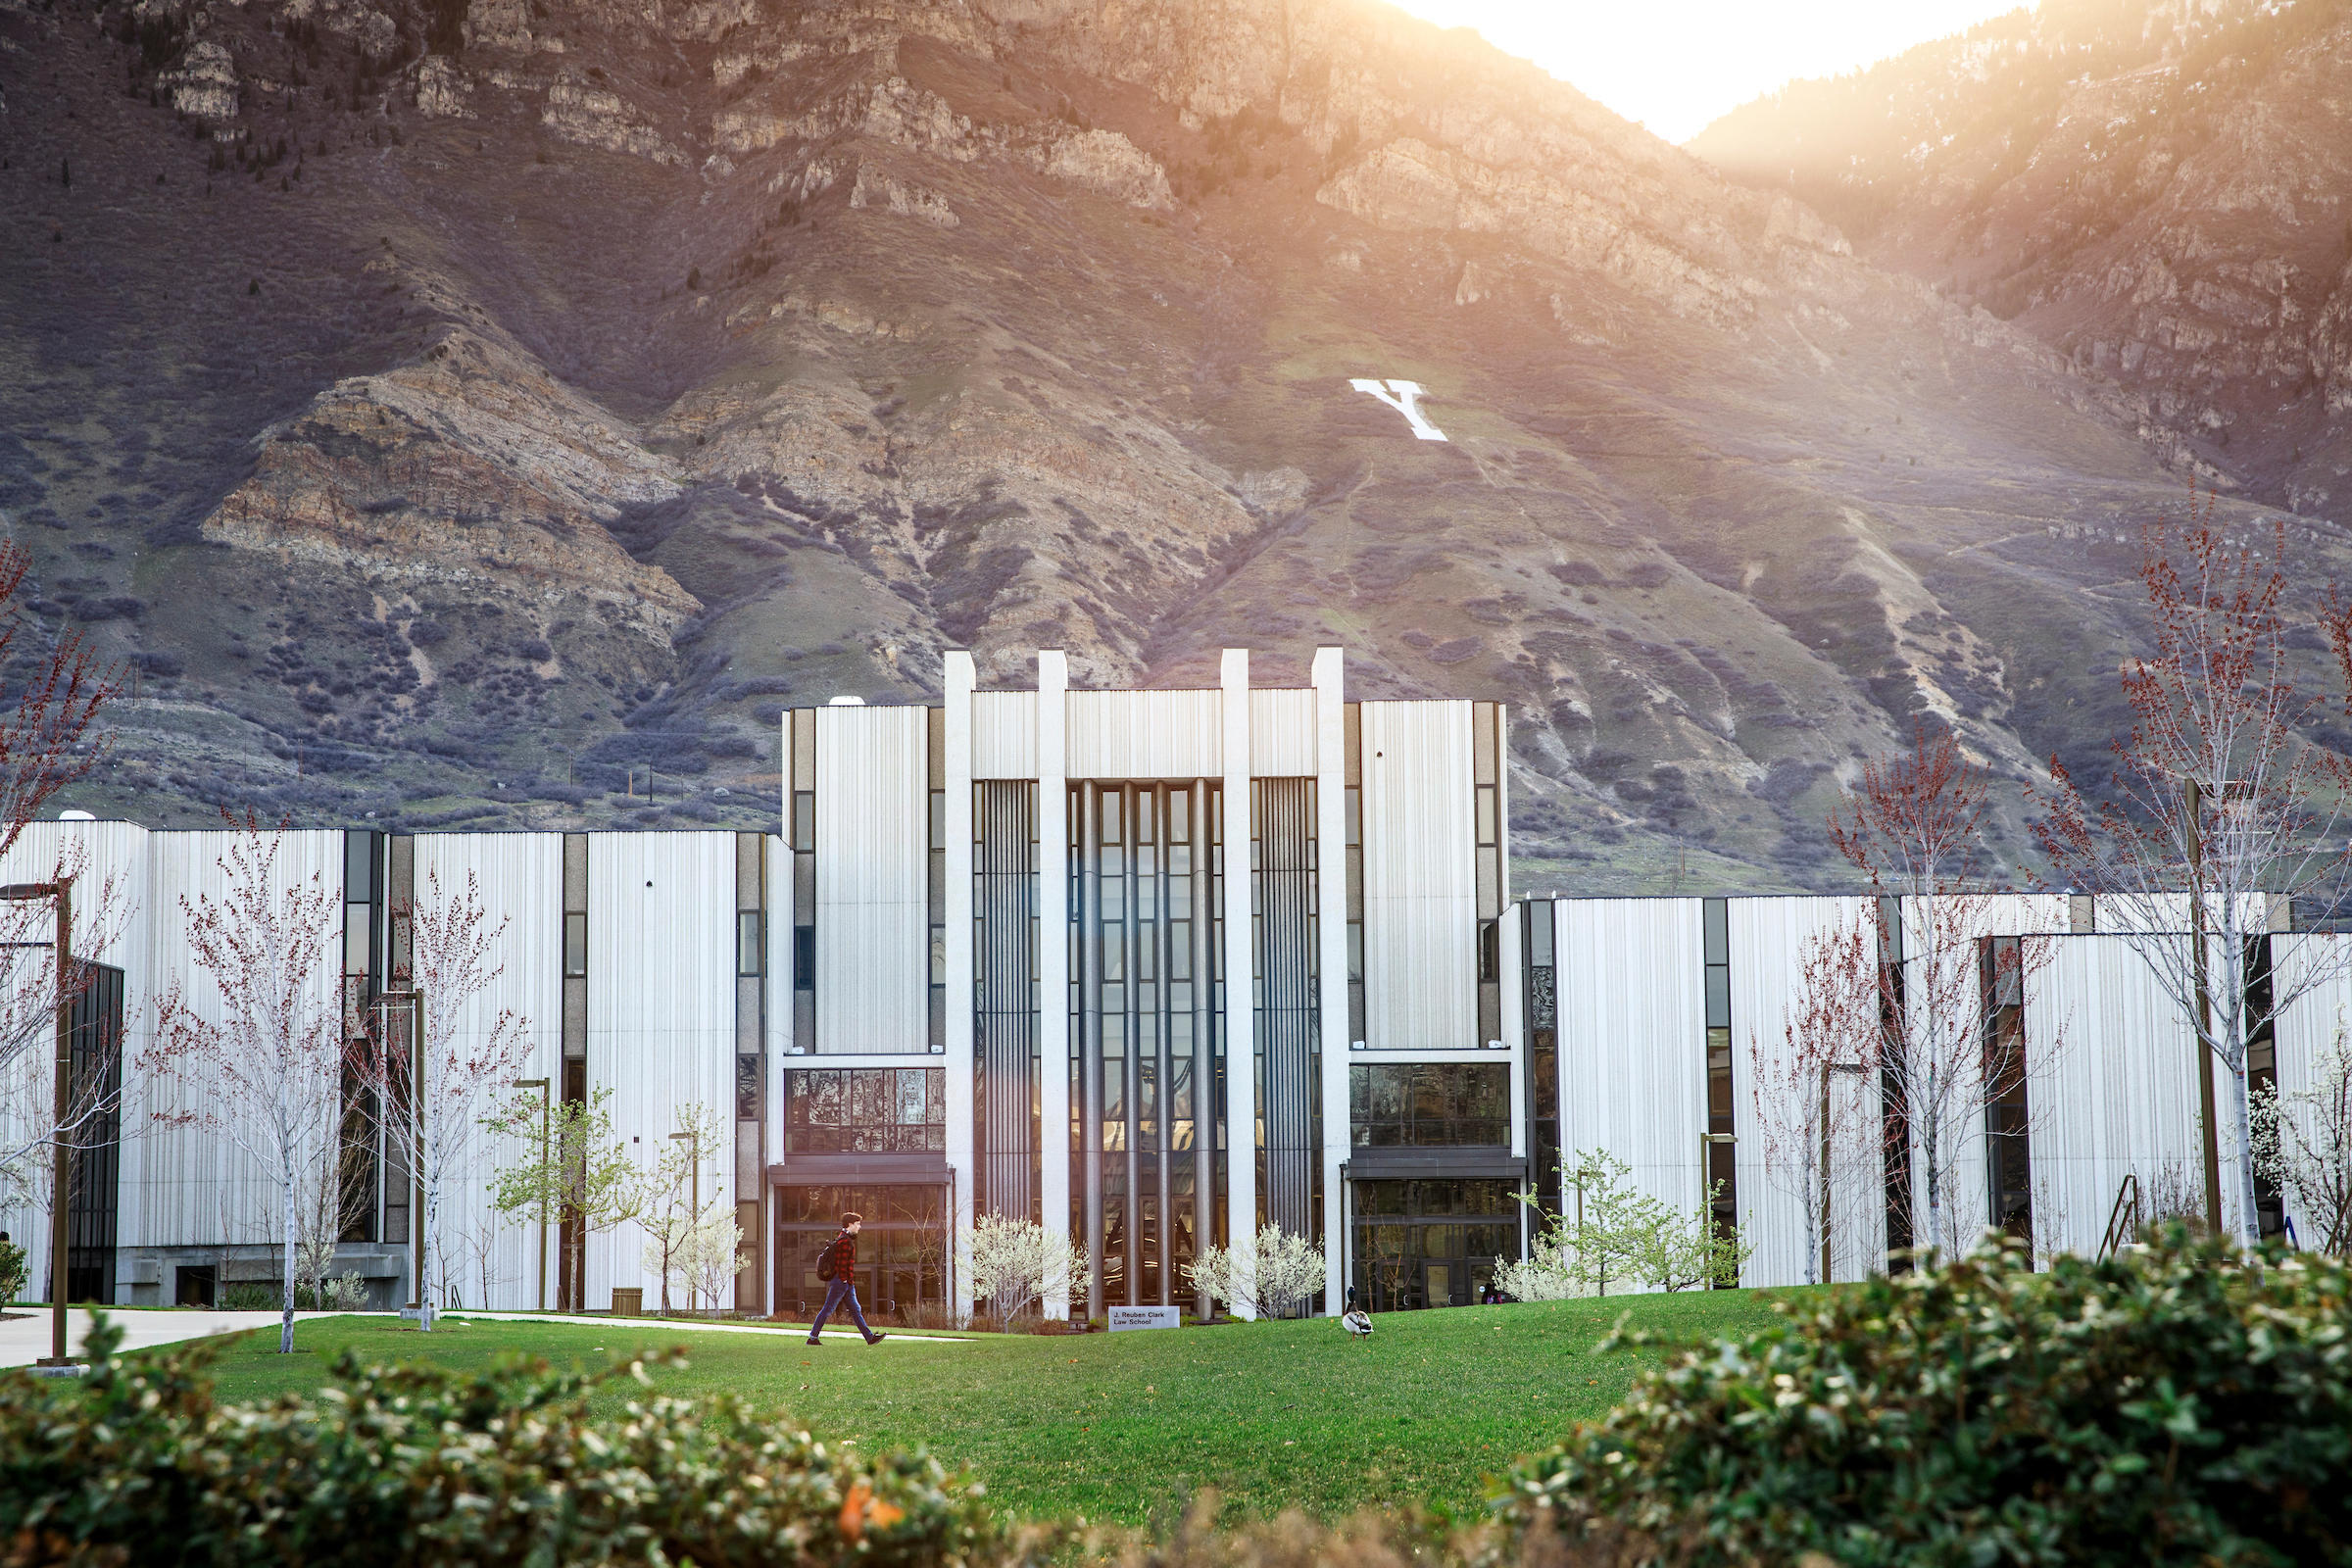 Brigham Young University -